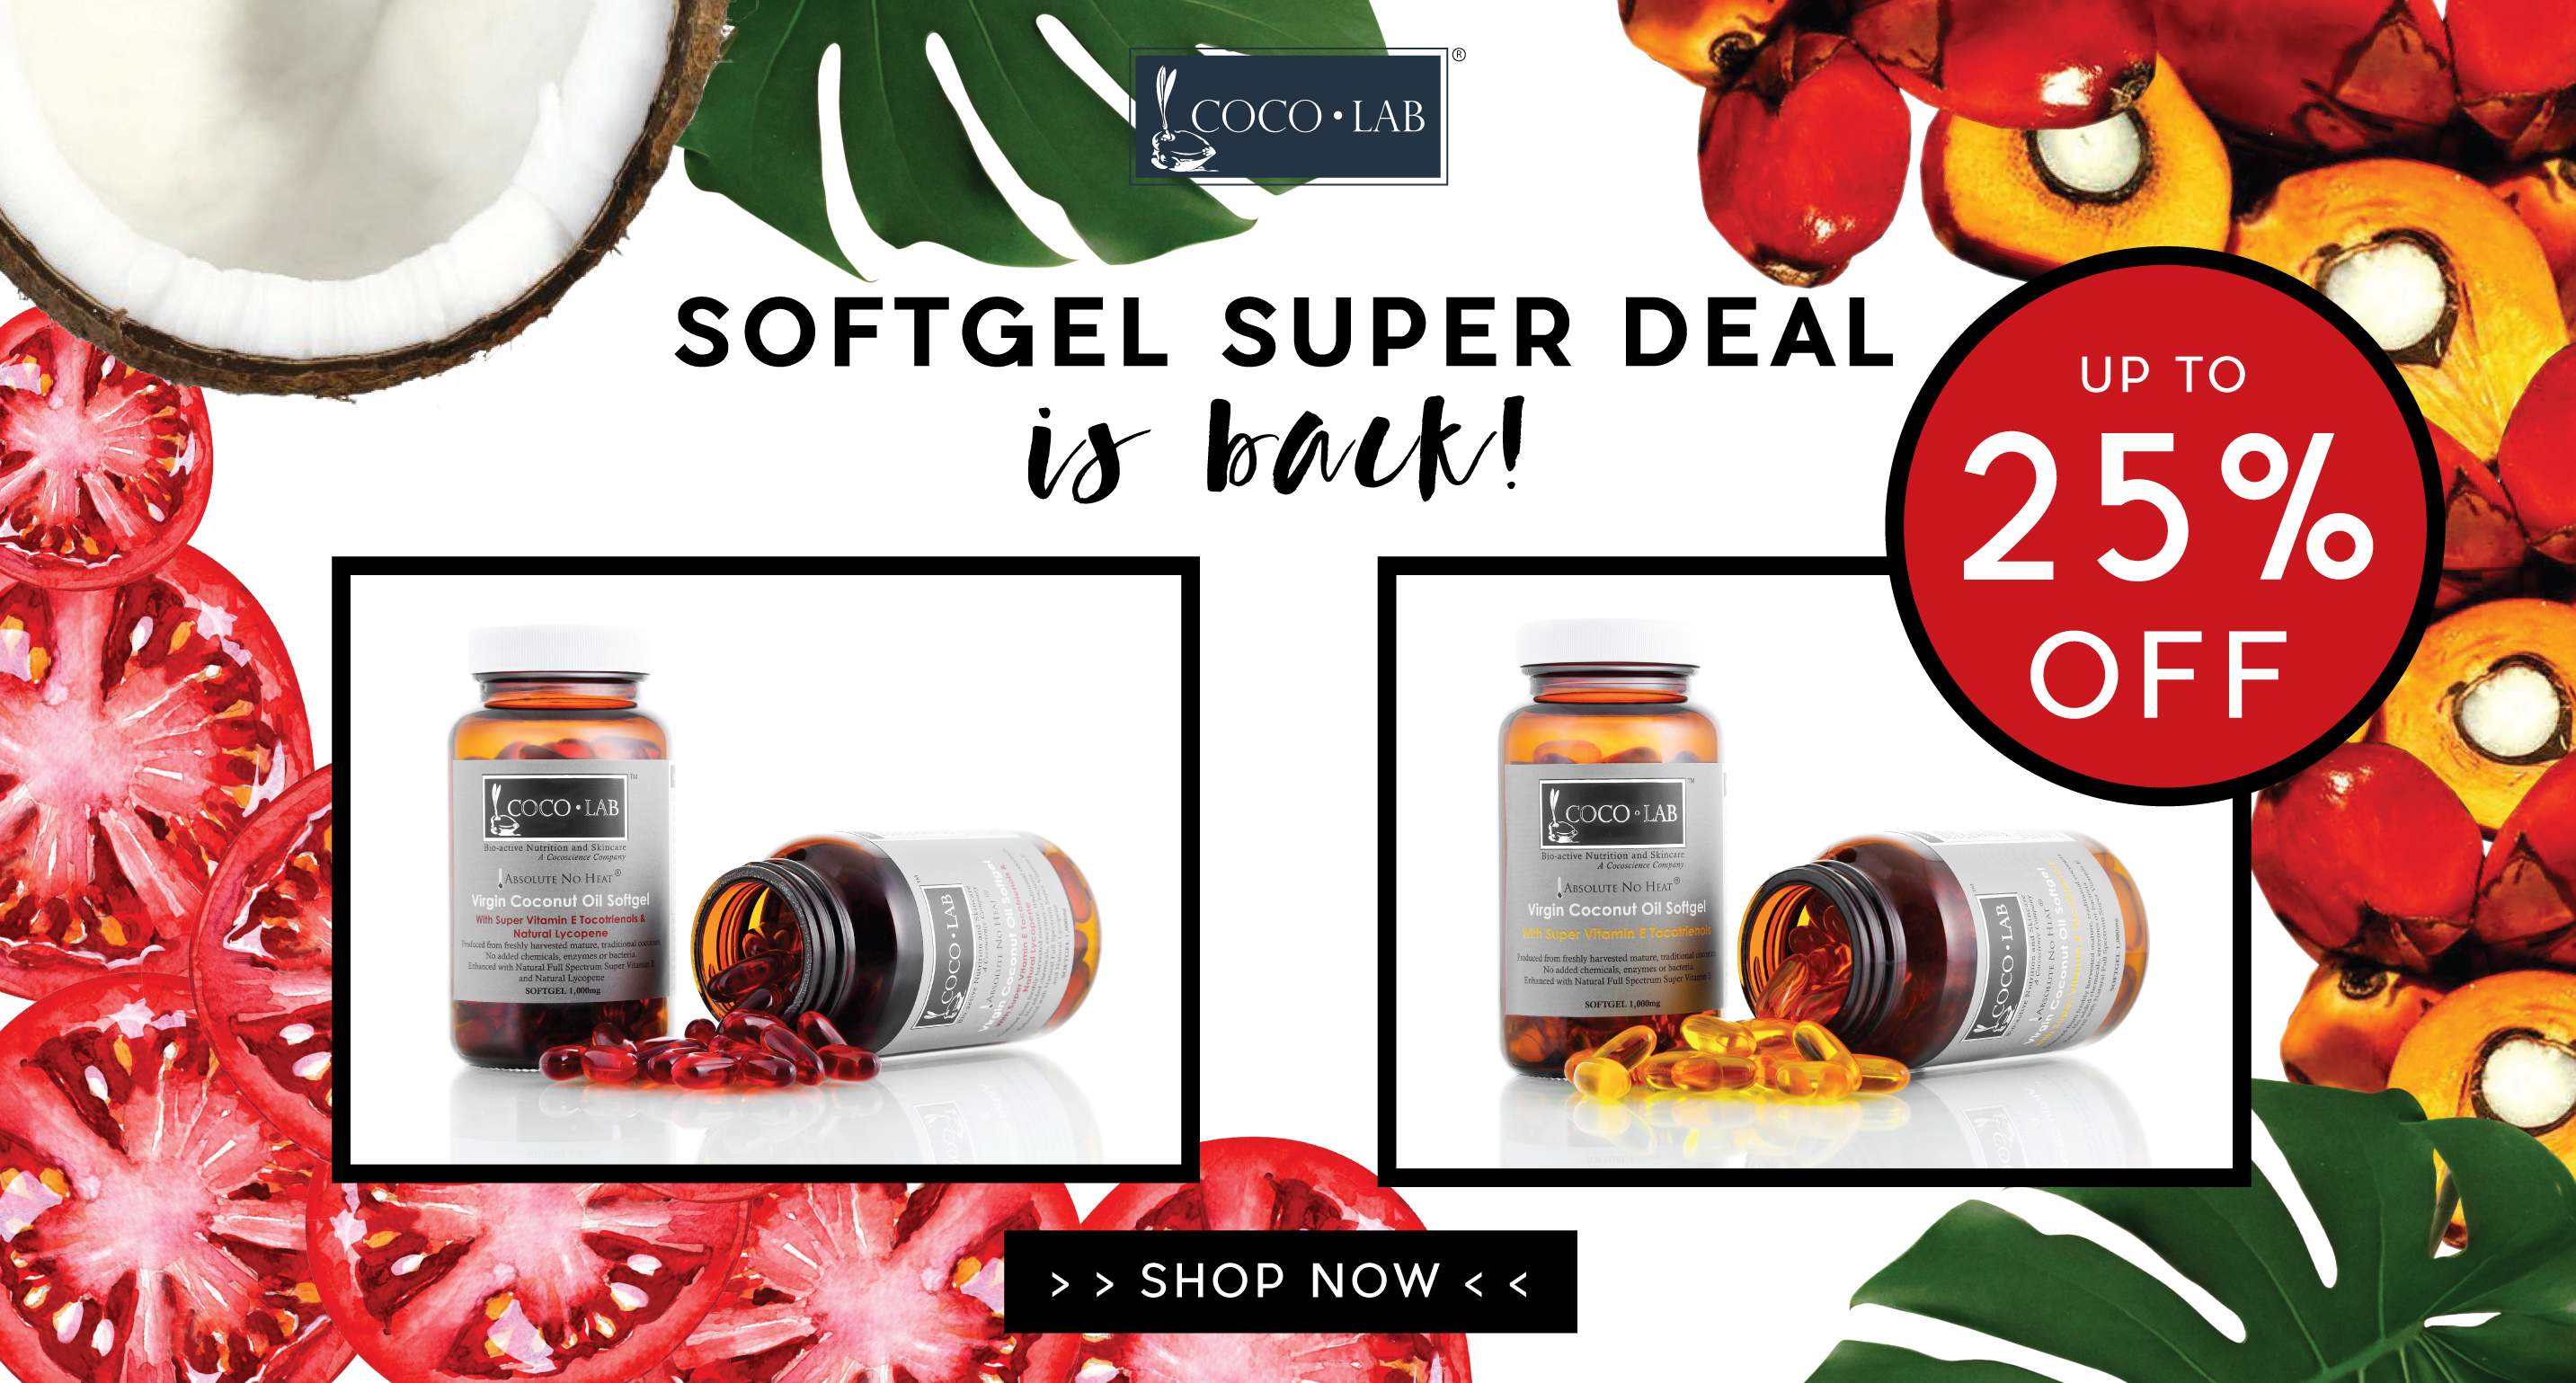 Our Softgel Super Deal is Back!